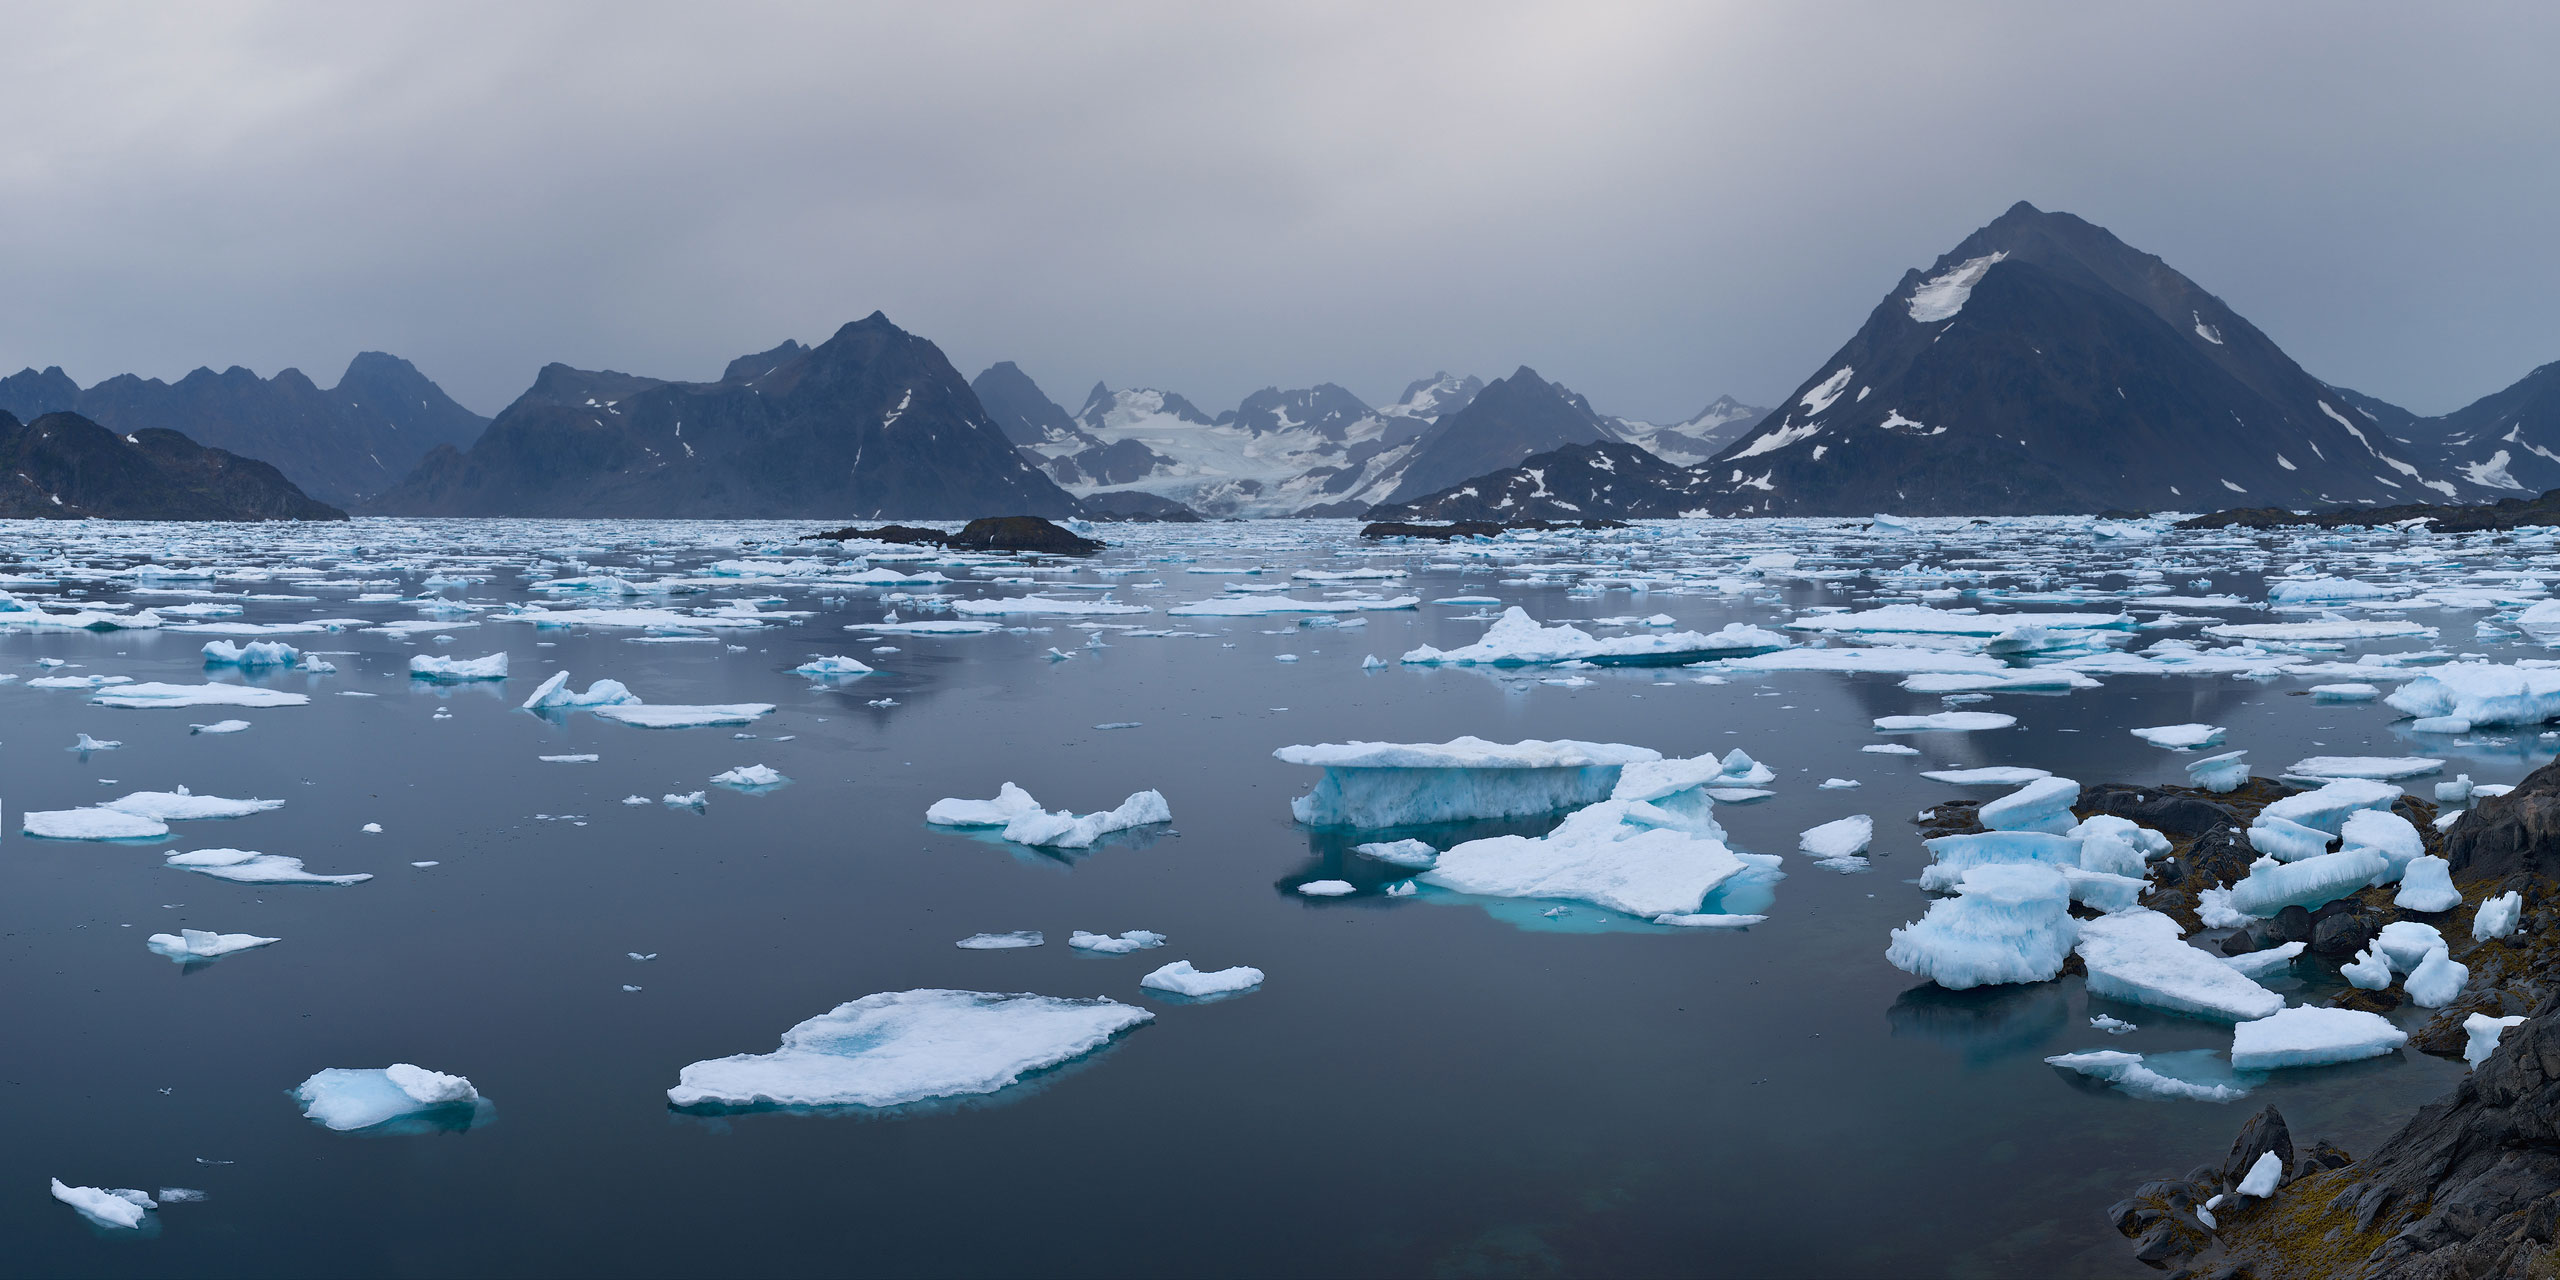 Gray morning. Distant view of The tidewater Apusiaajik Glacier. Torsuut Tunoq sound, Southeastern Greenland. - Greenland-Iceberg-Factory-1 - Mike Reyfman Photography